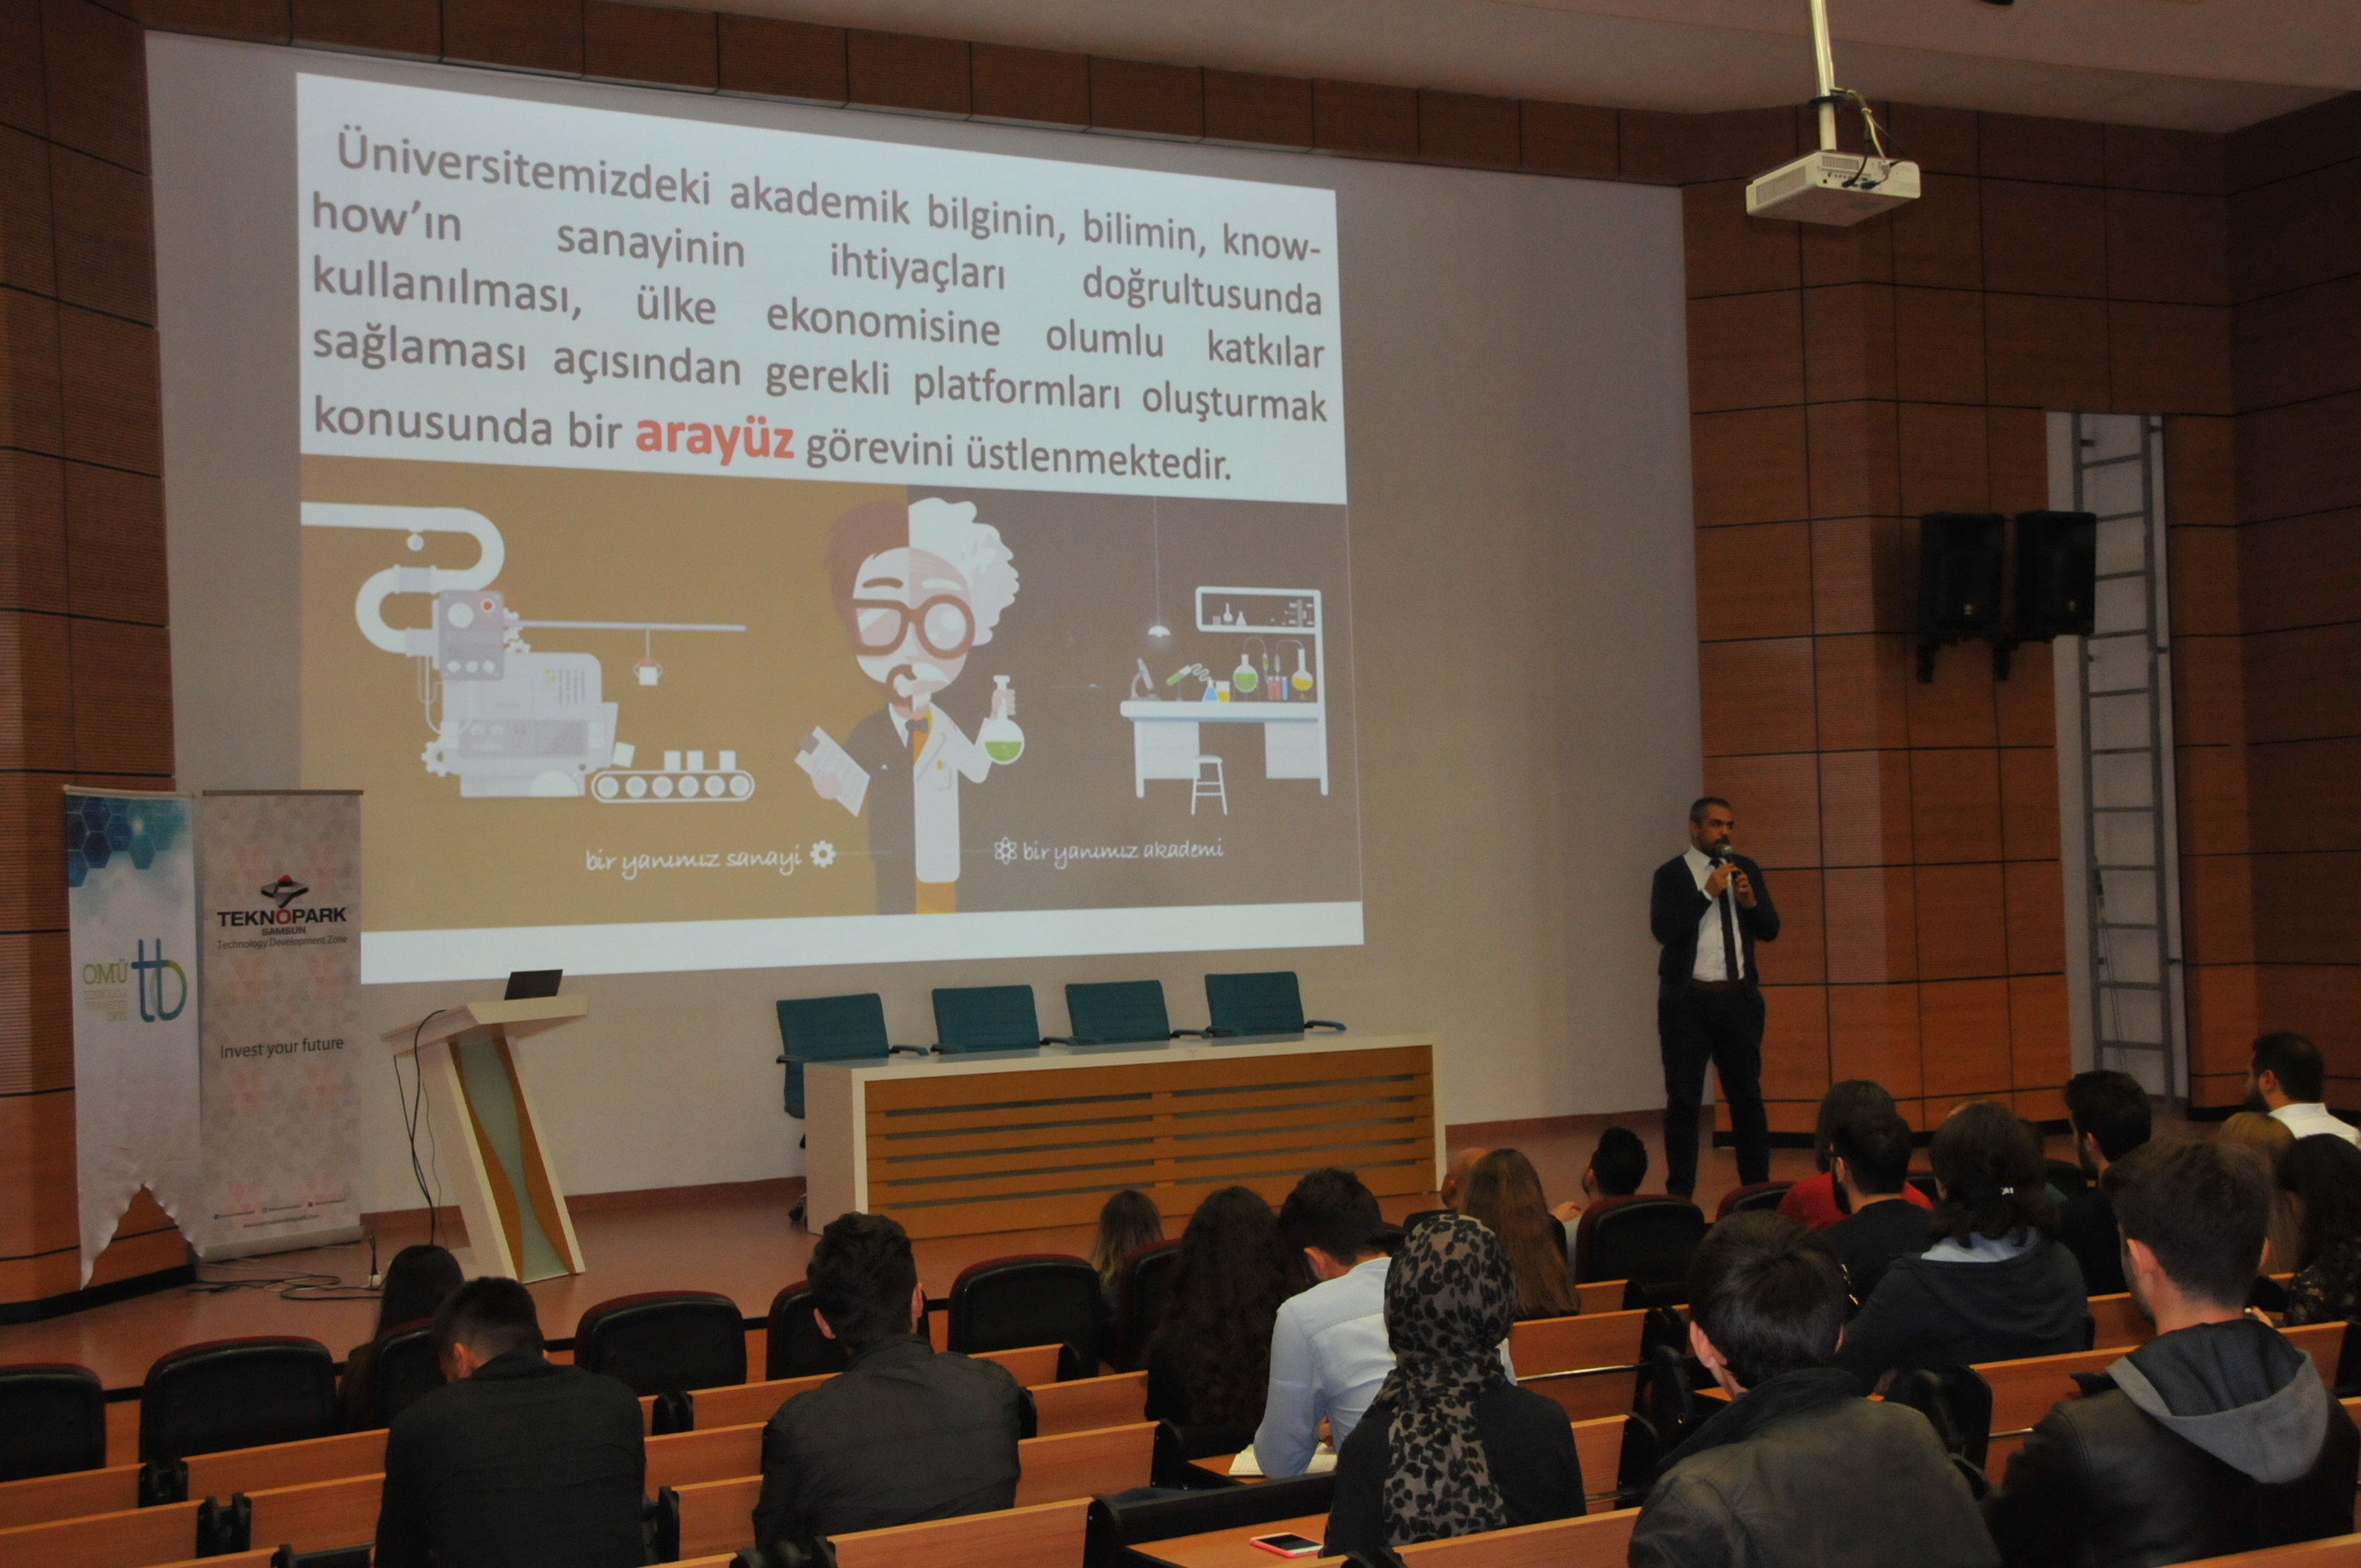 http://www.omu.edu.tr/sites/default/files/files/samsun_technopark_shares_its_projects_with_students/dsc_0169.jpg